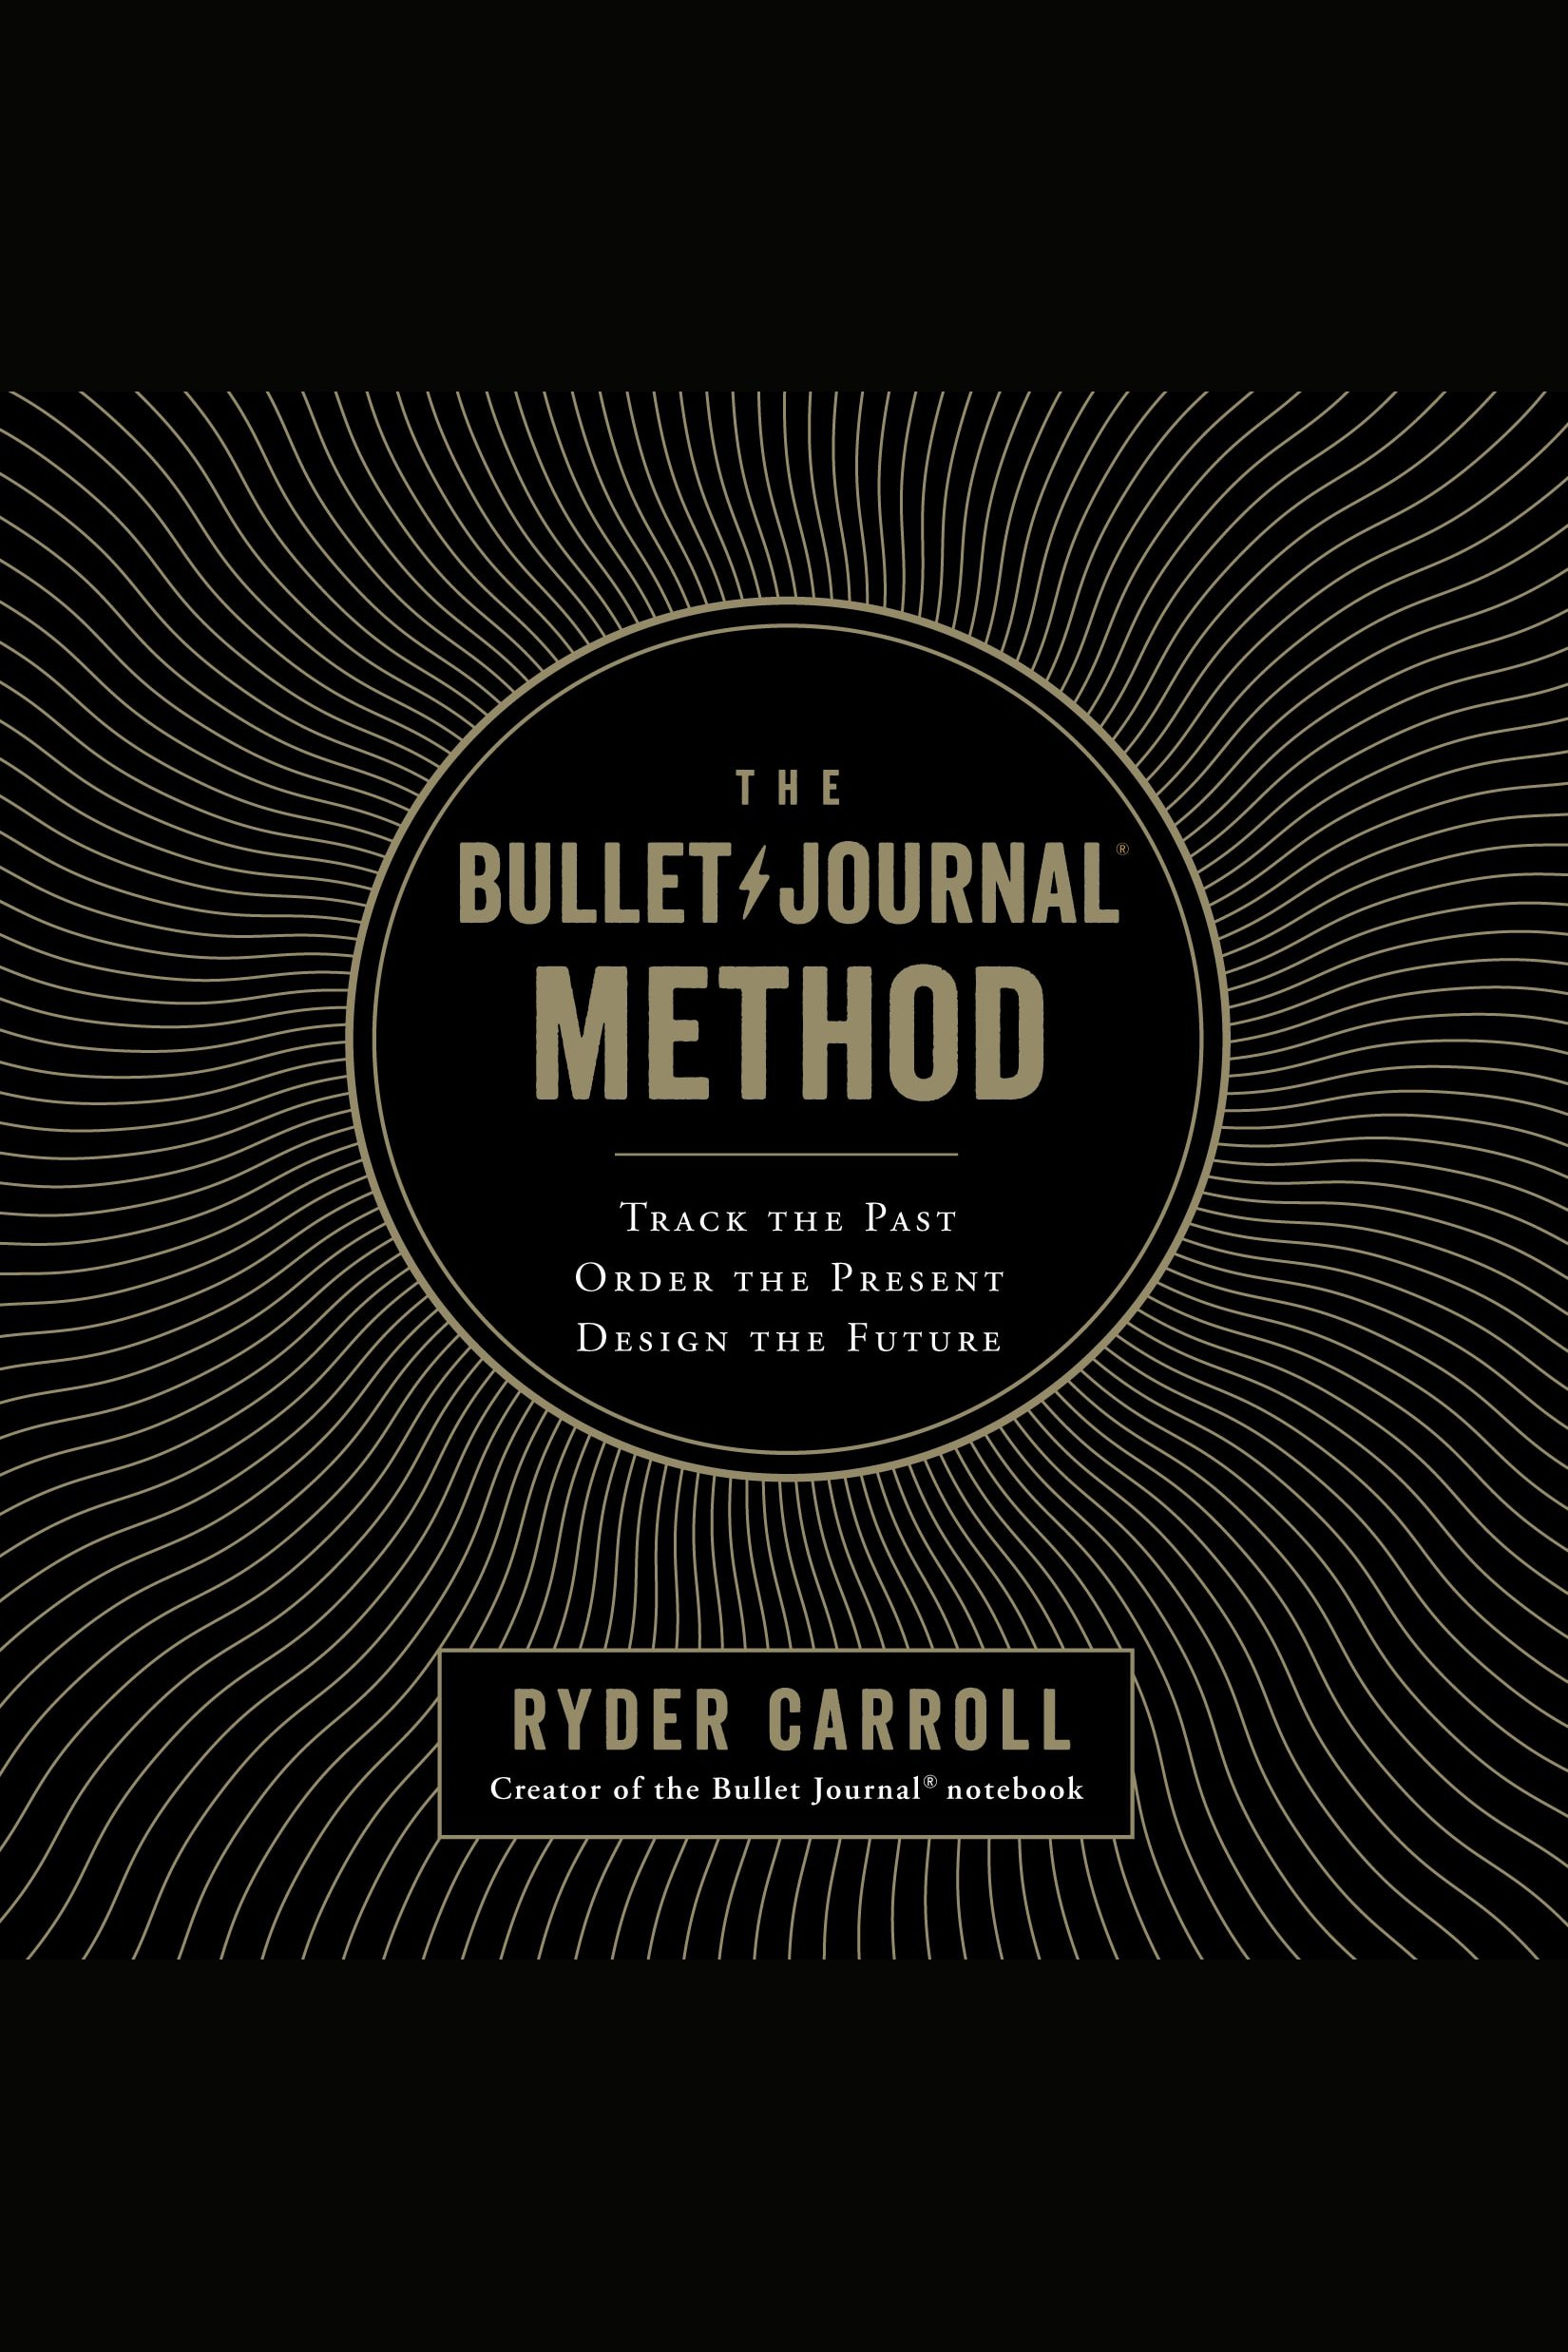 Bullet Journal Method, The Track the Past, Order the Present, Design the Future